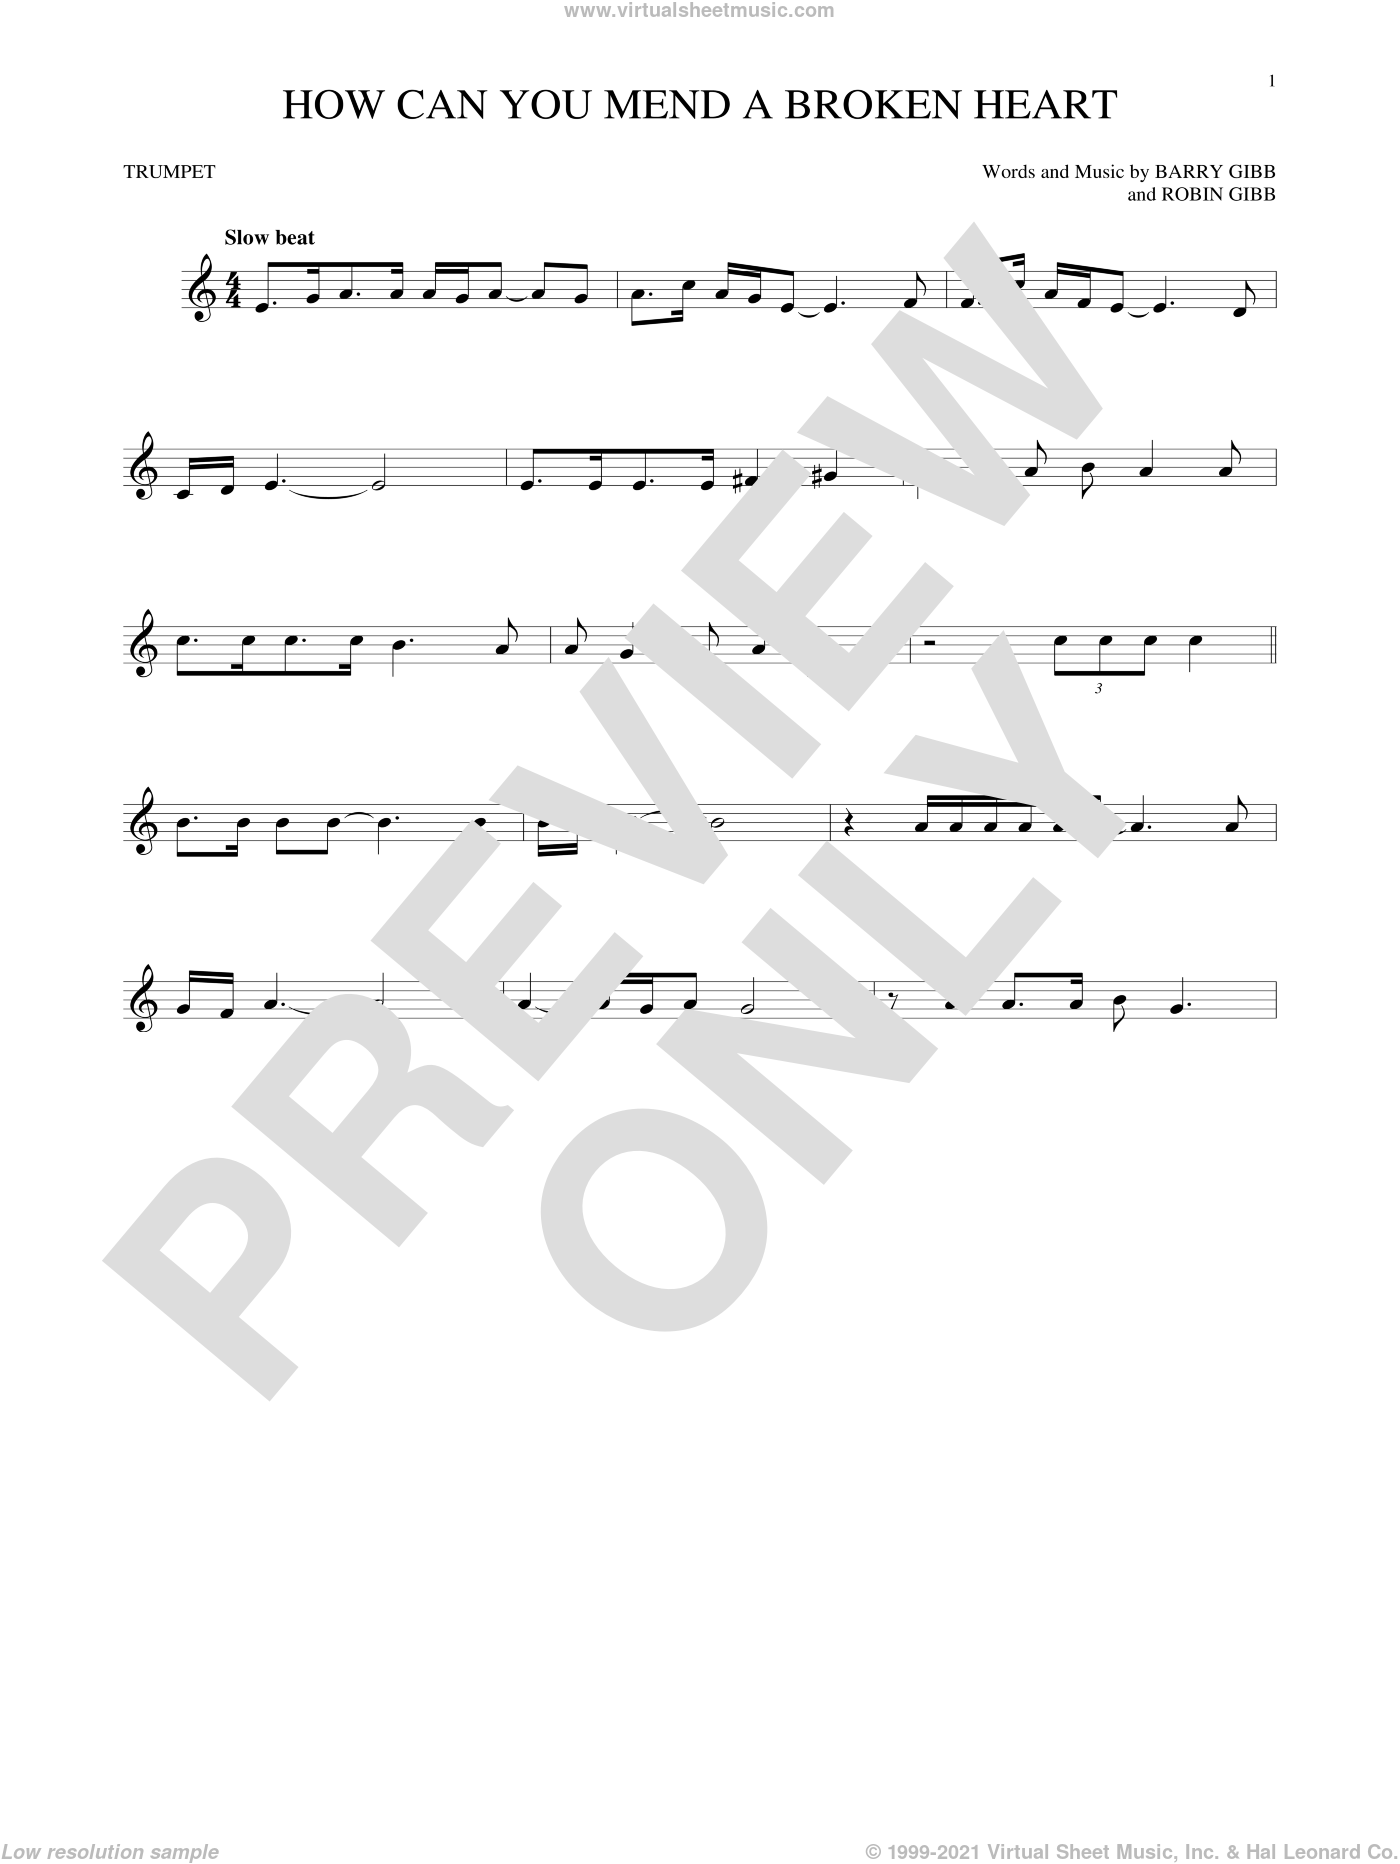 How Can You Mend A Broken Heart sheet music for trumpet solo by Barry Gibb, Bee Gees and Robin Gibb, intermediate skill level